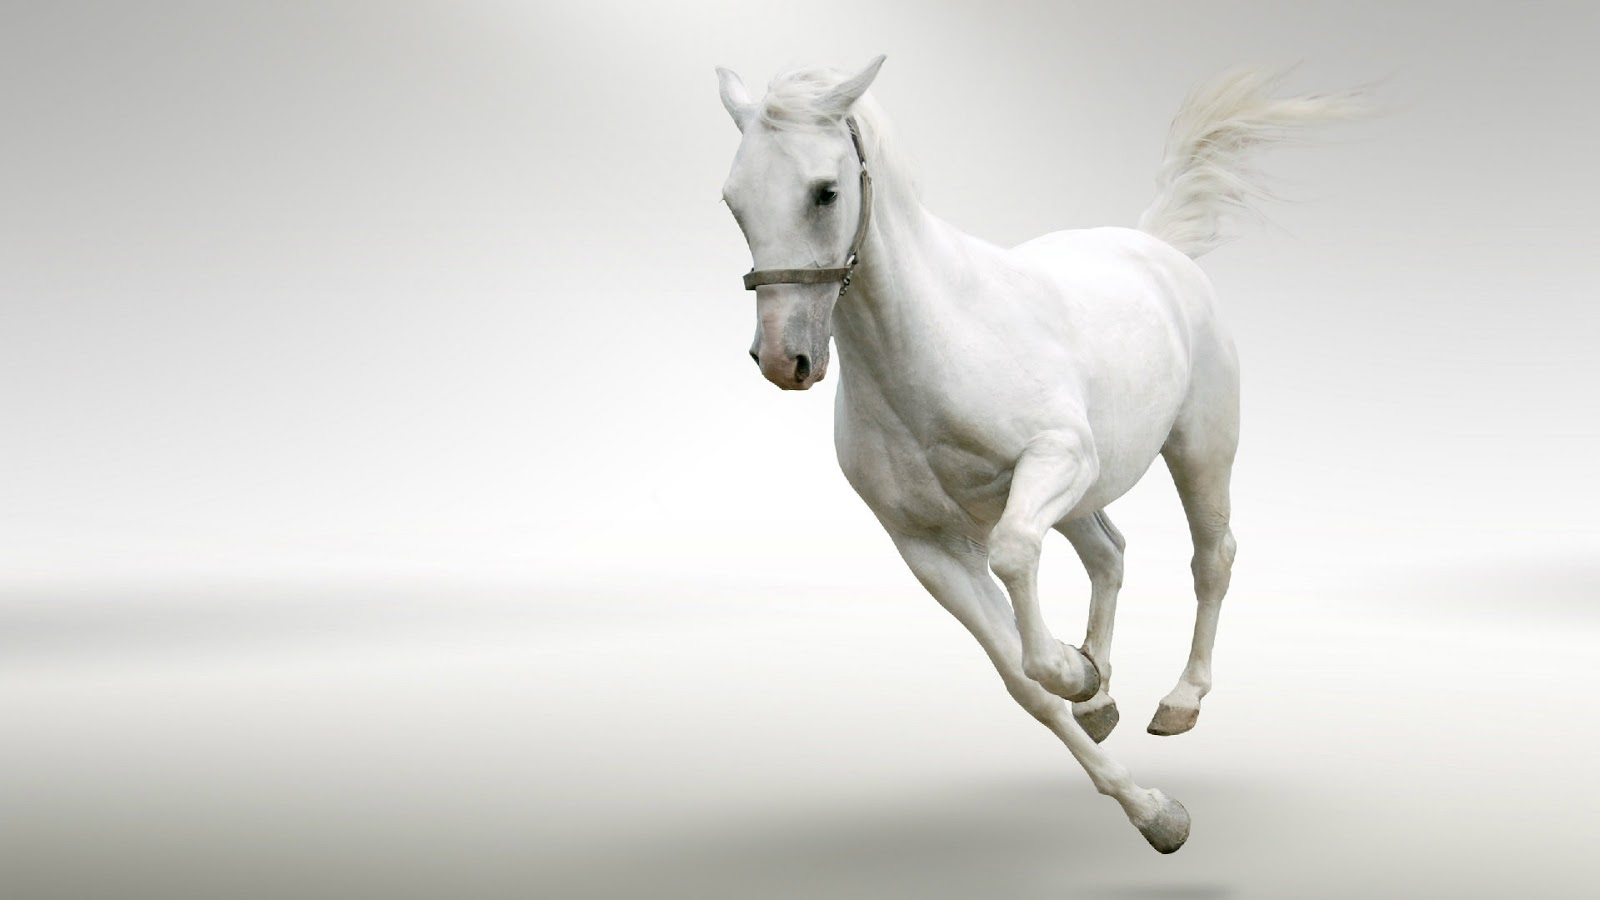 White running horses - photo#8